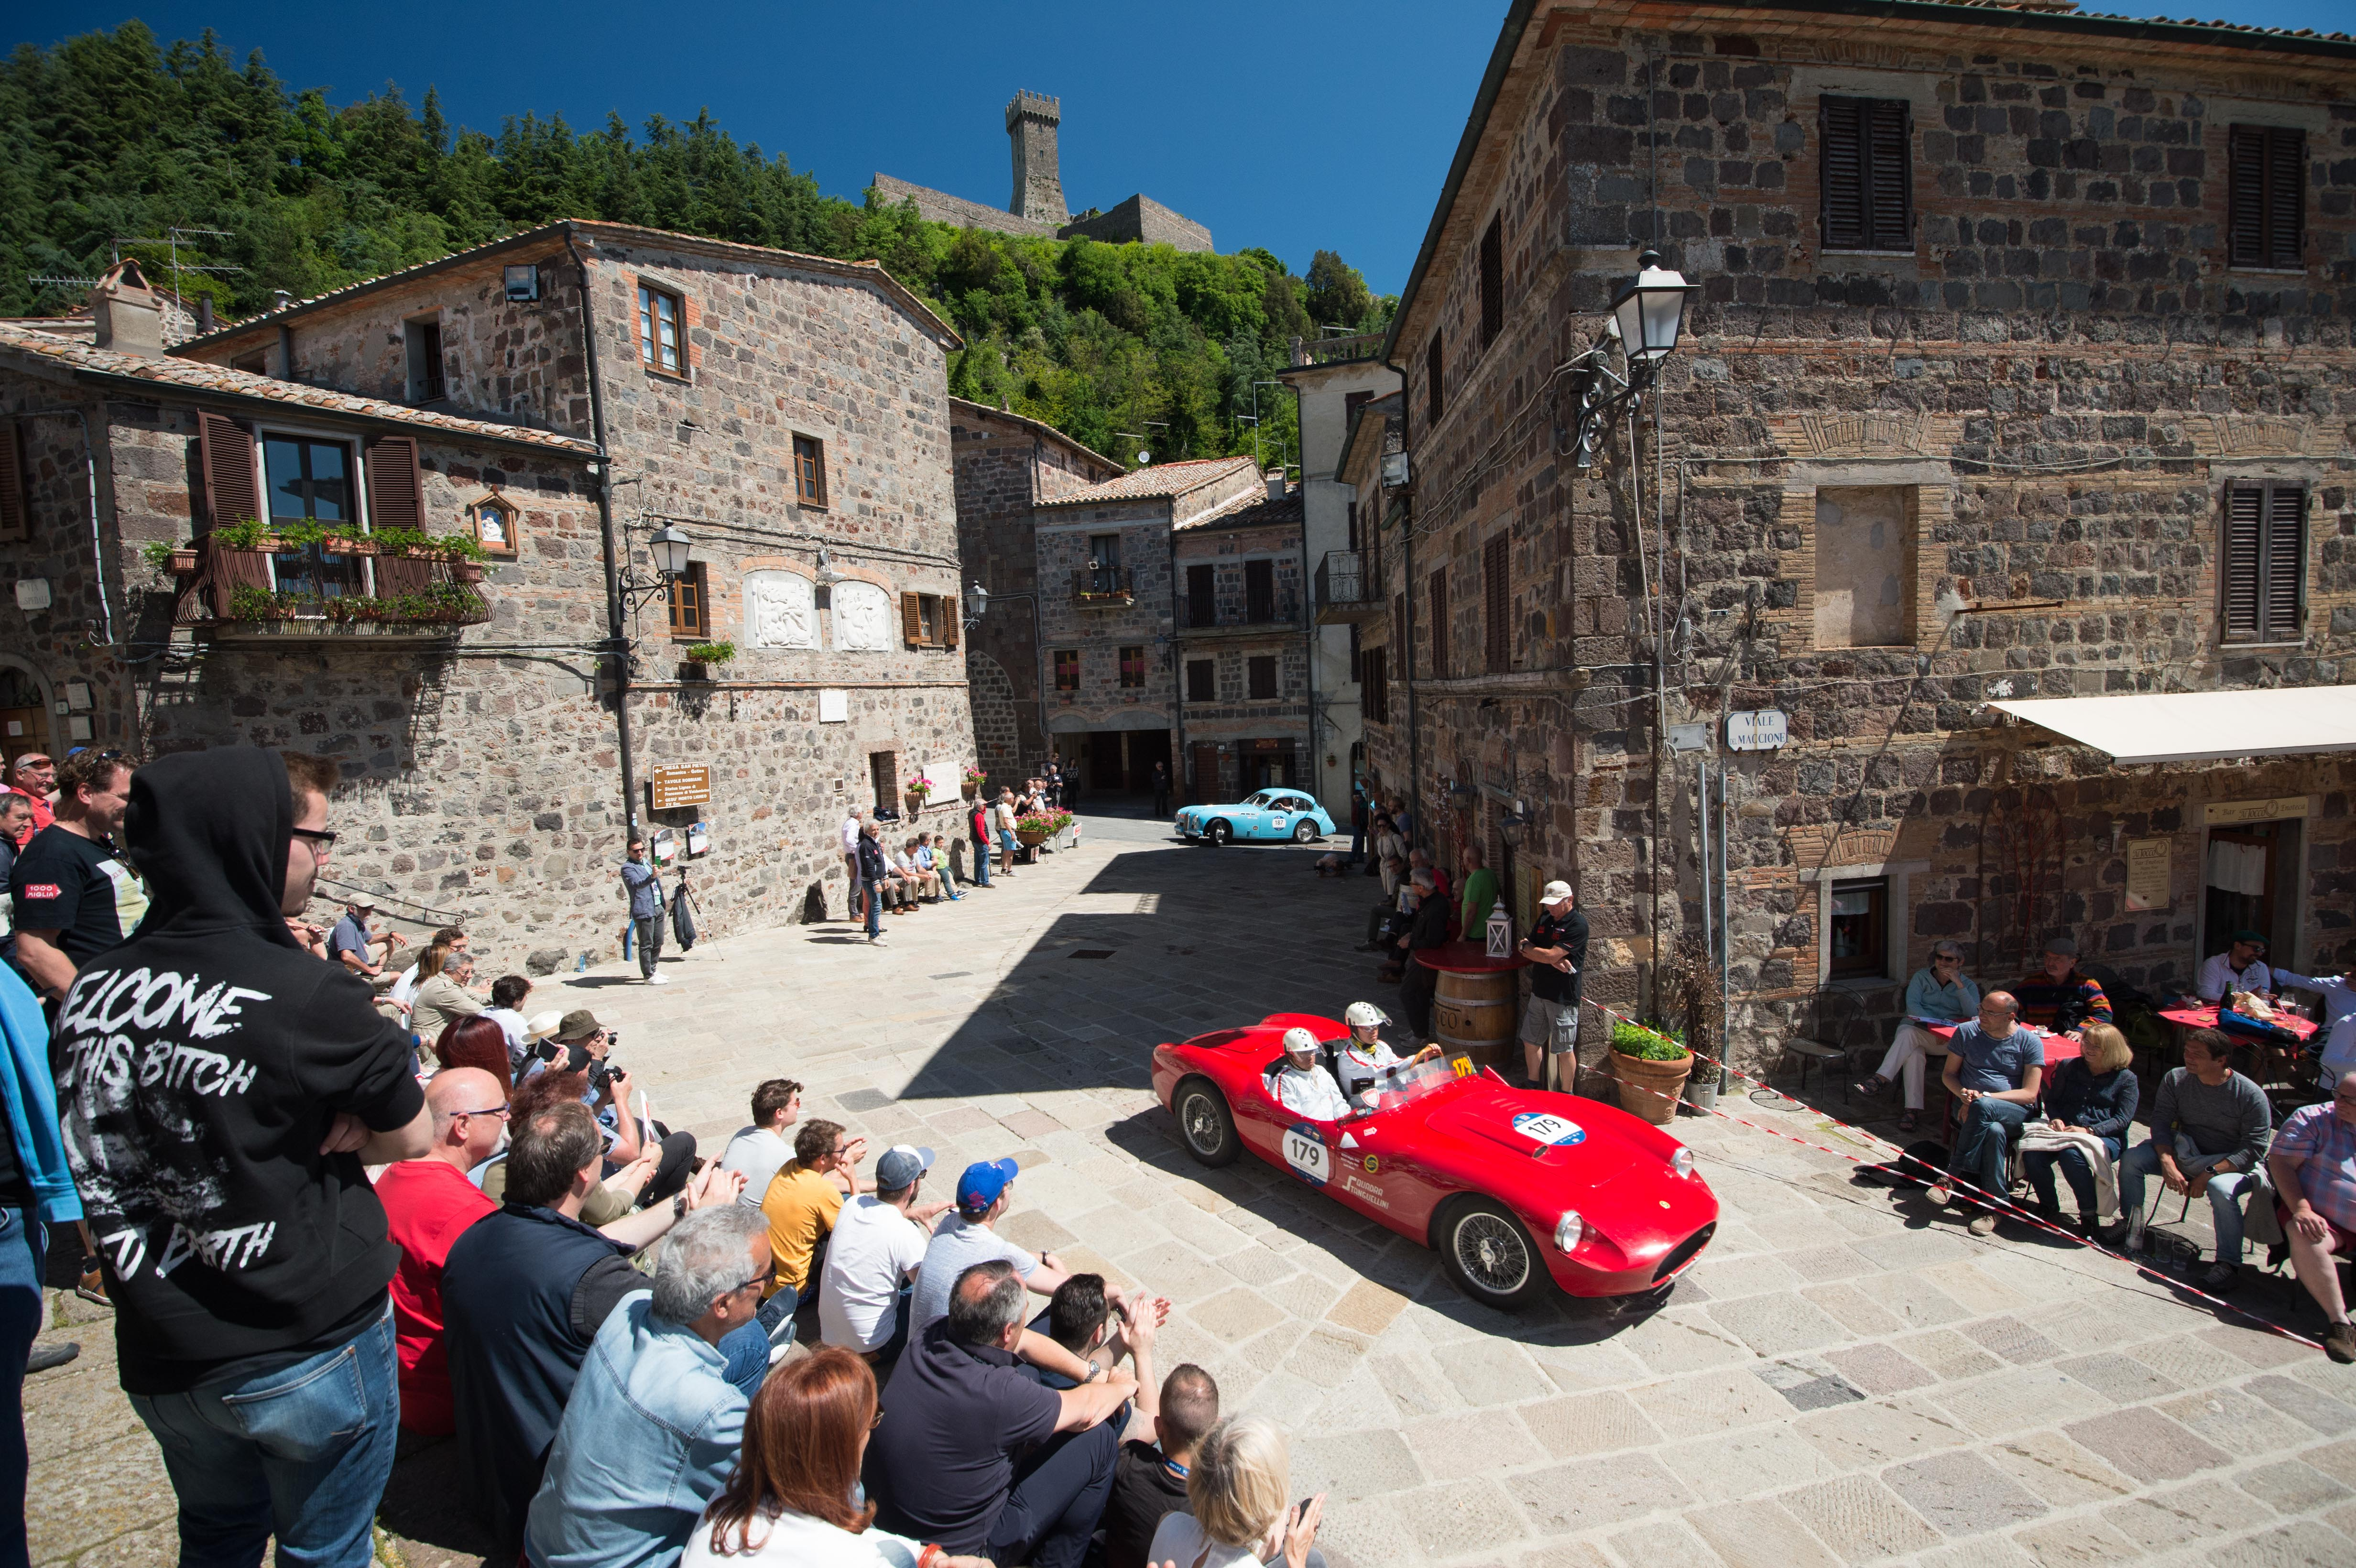 The Mille Miglia: A staggering display of grandeur.